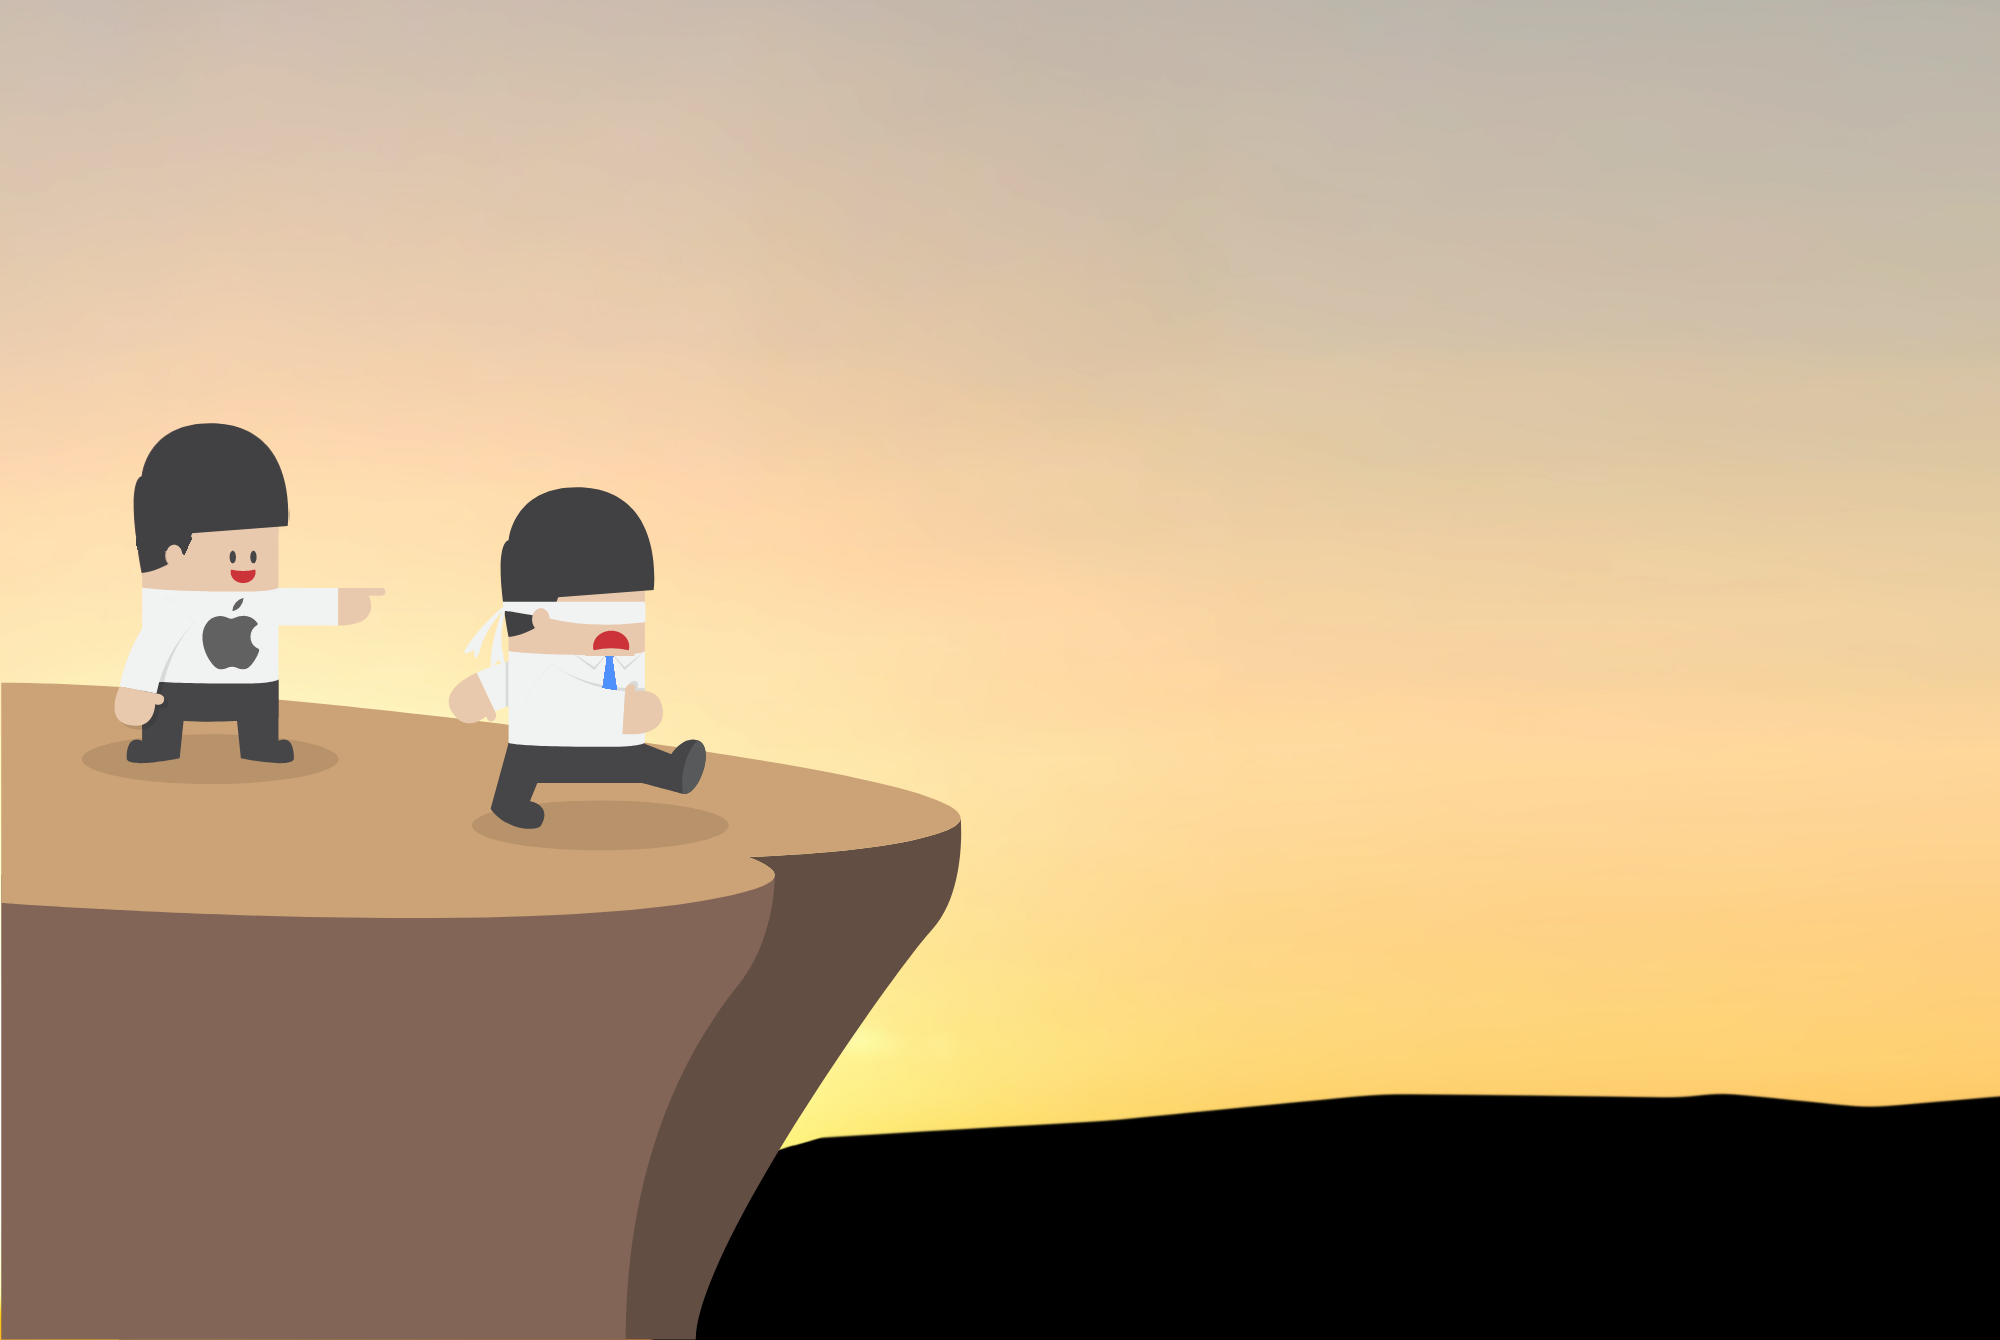 2 cartoon people by the cliff. The human with the Apple logo points to the cliff. The human with the Facebook logo is blindfolded and walking towards the cliff.